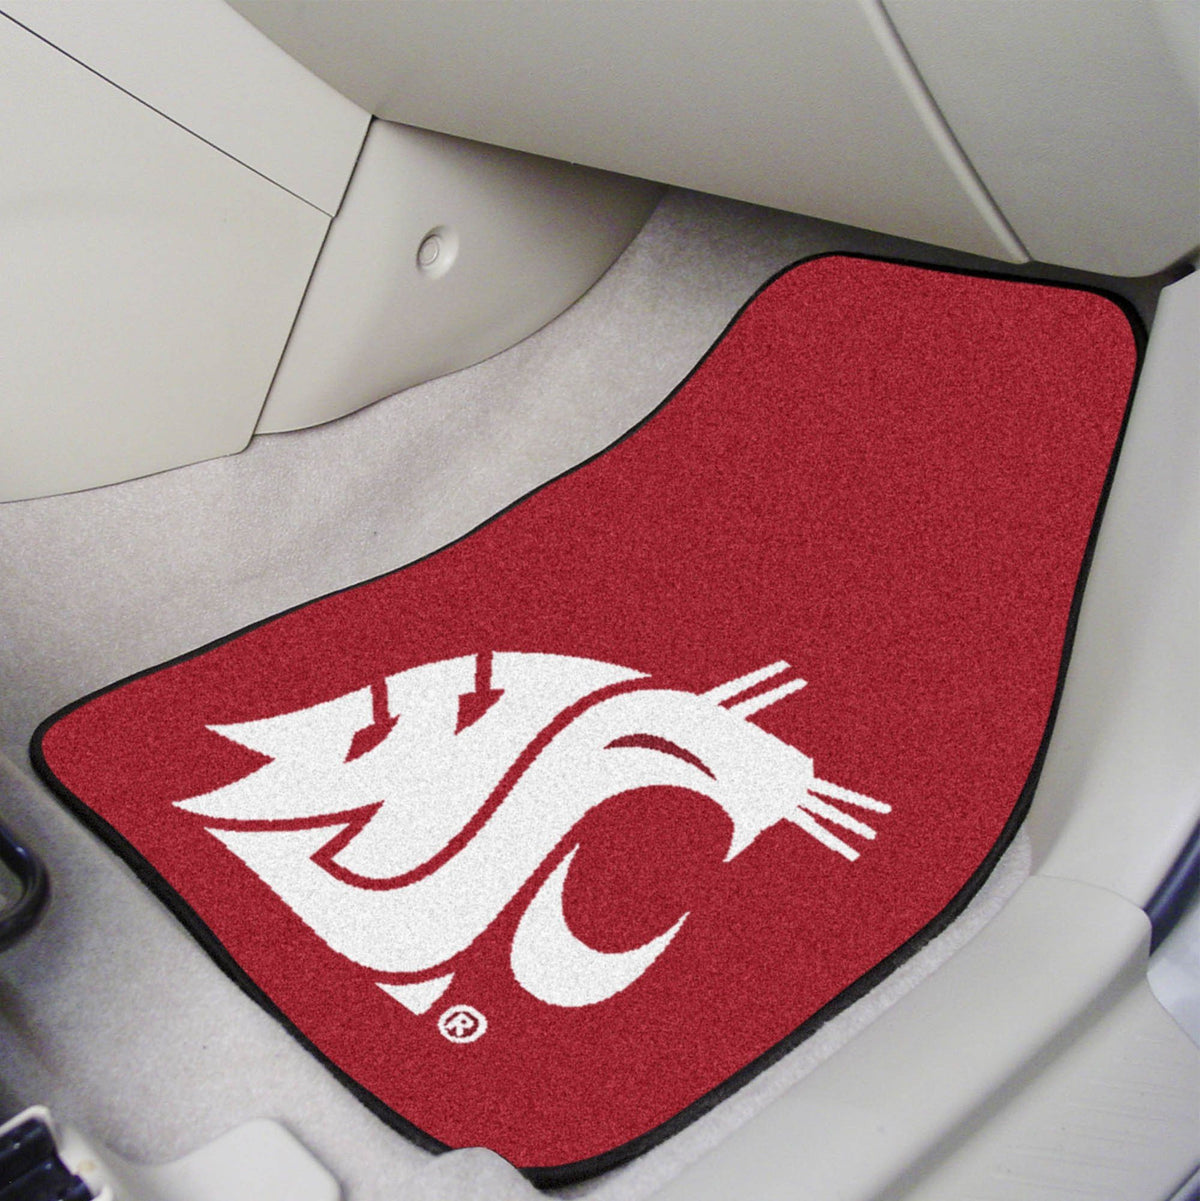 Collegiate - Carpet Car Mat, 2-Piece Set: T - Z Collegiate Car Mat, Front Car Mats, 2-pc Carpet Car Mat Set, Collegiate, Auto Fan Mats Washington State